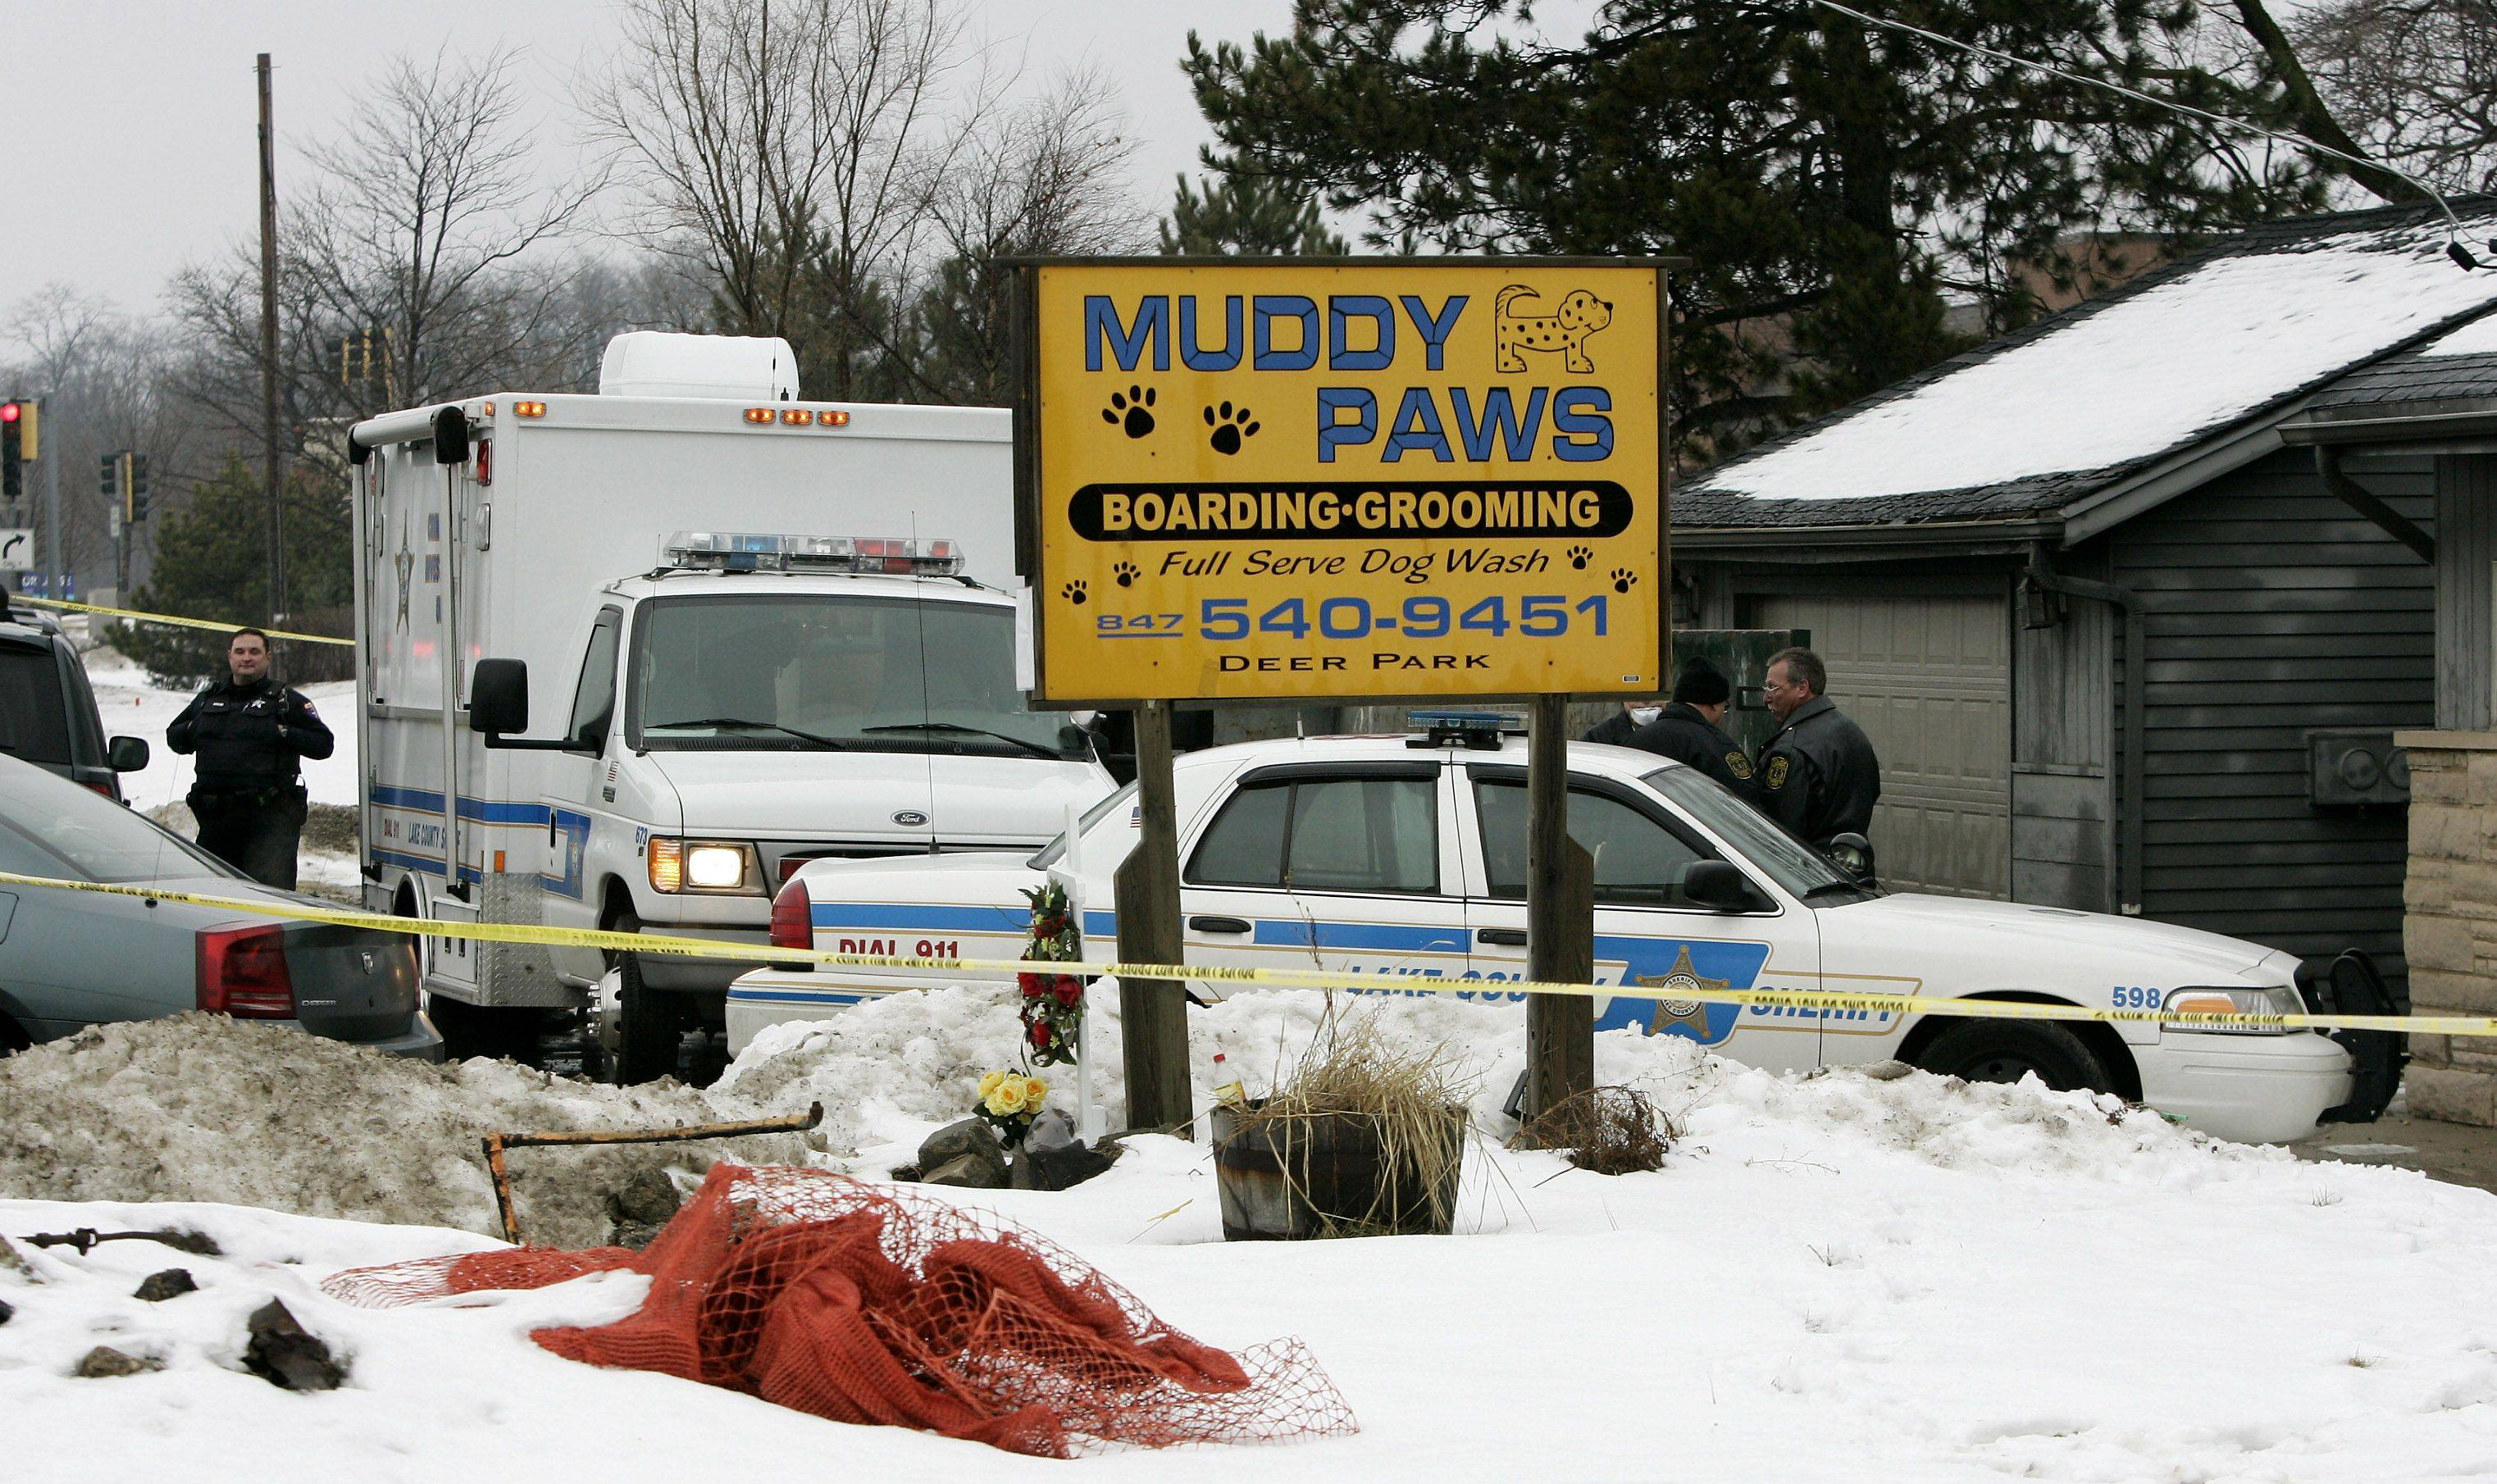 Lake County sheriff's investigators, Kildeer police and other agencies investigate the scene at Muddy Paws Dog Rescue to collect more evidence of animal cruelty and deaths in the case against Diane Eldrup, the former operator of the shelter.